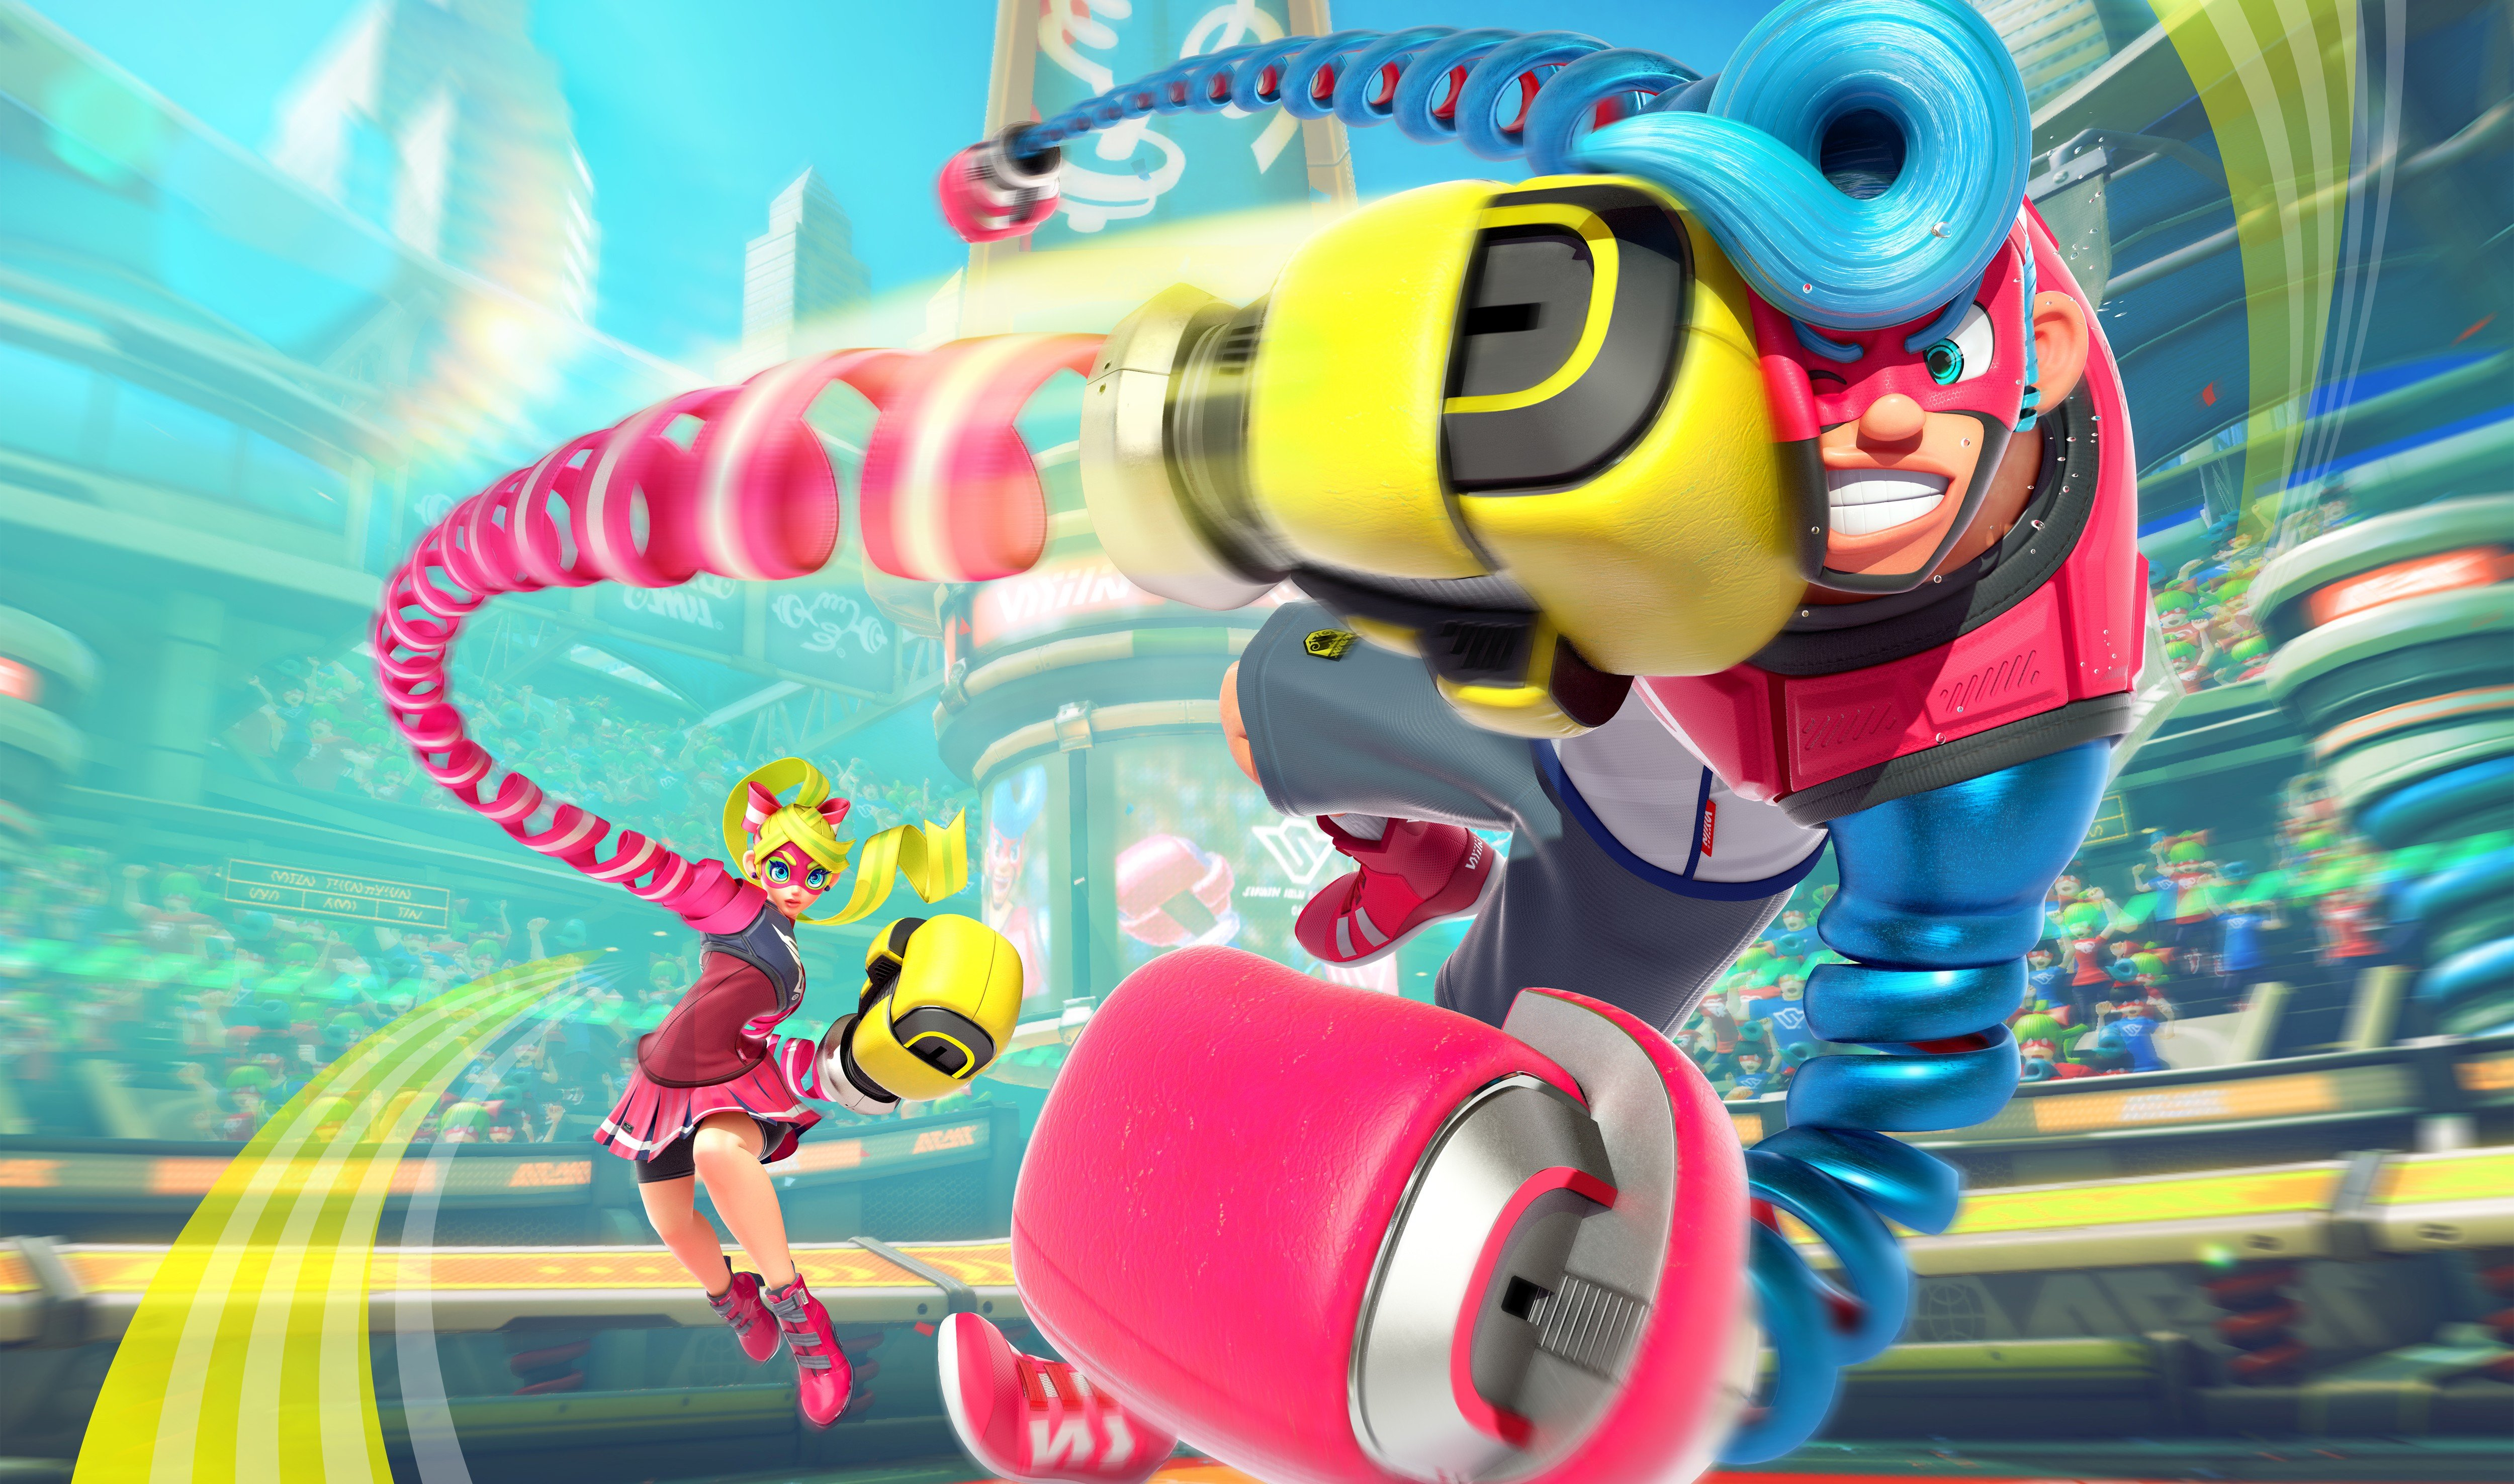 Nintendo's ARMS is getting a series of graphic novels screenshot